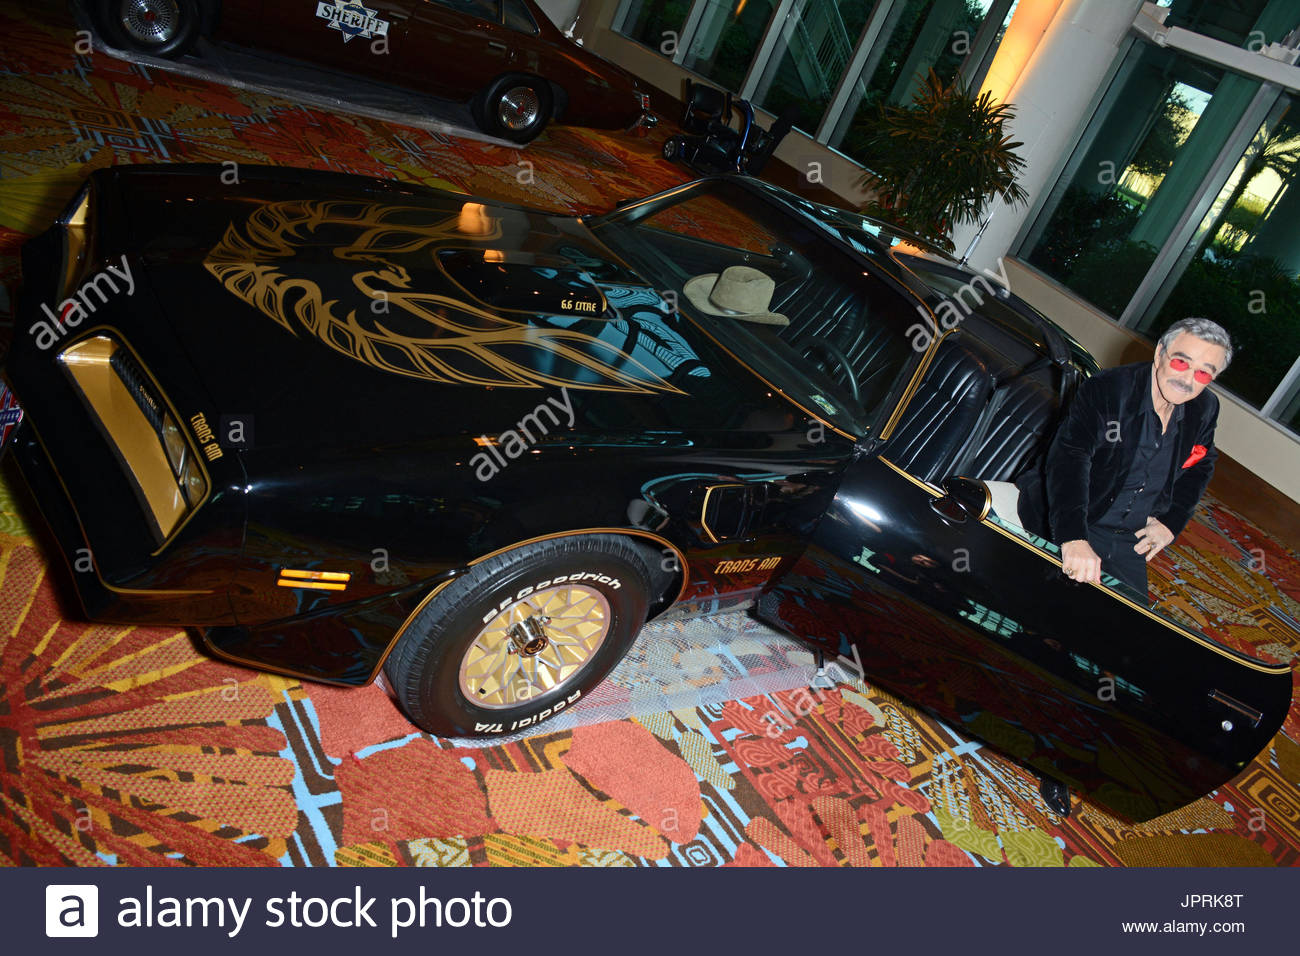 Trans Am Stock Photos Amp Trans Am Stock Images Alamy